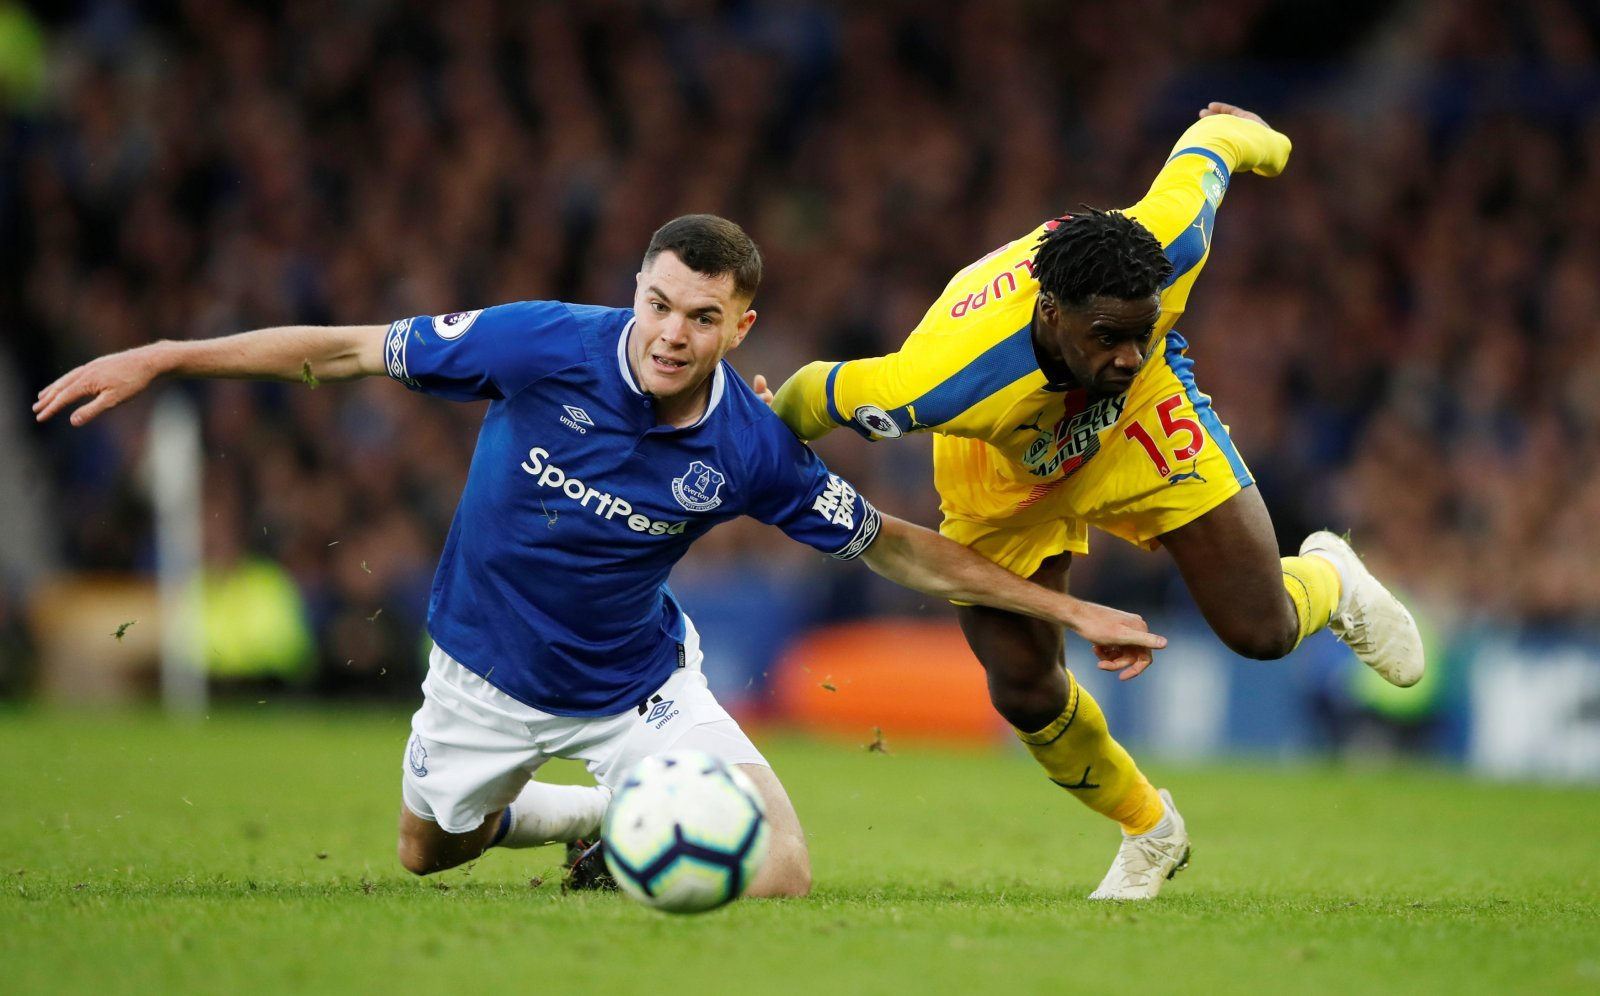 Keane must not rest on his laurels following Silva's praise after Everton turnaround